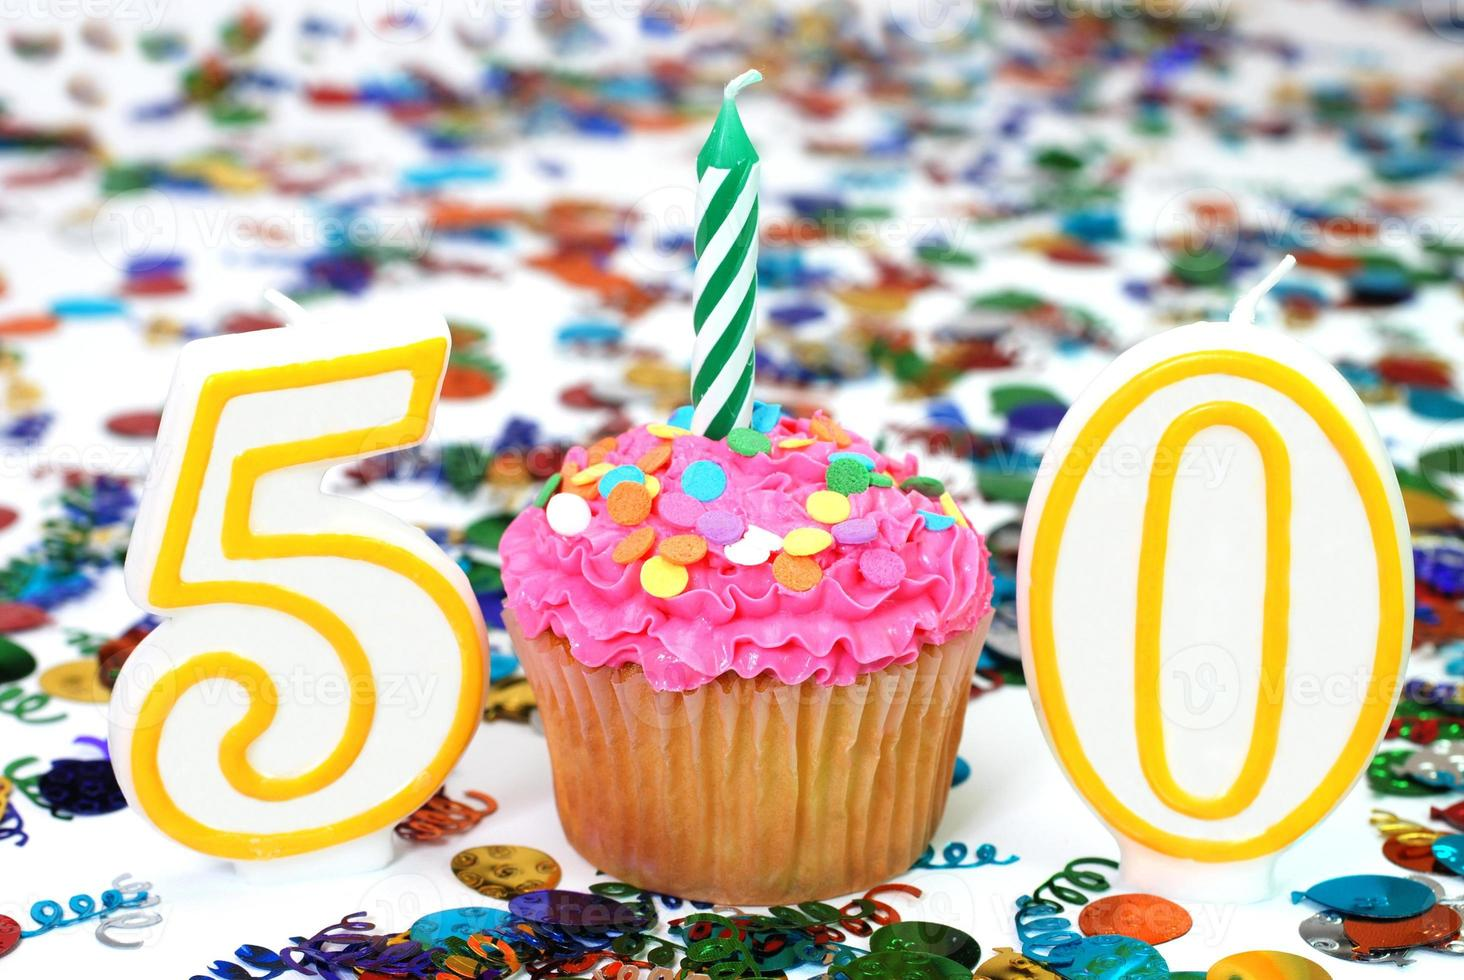 Celebration Cupcake with Candle - Number 50 photo